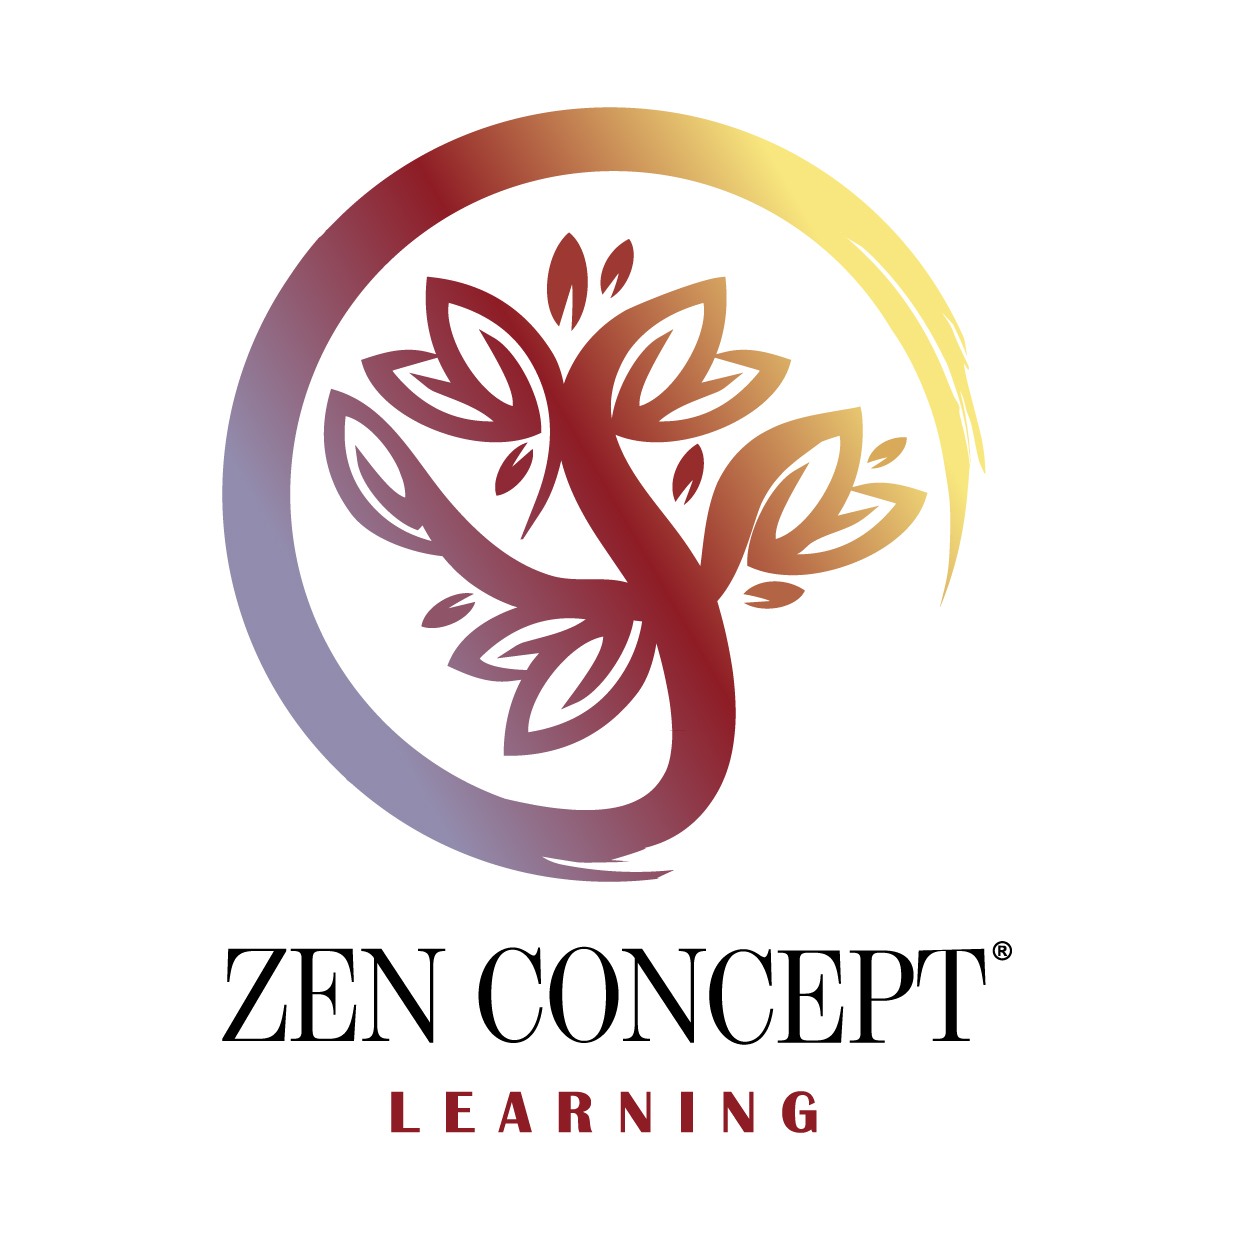 Zen Concept Learning